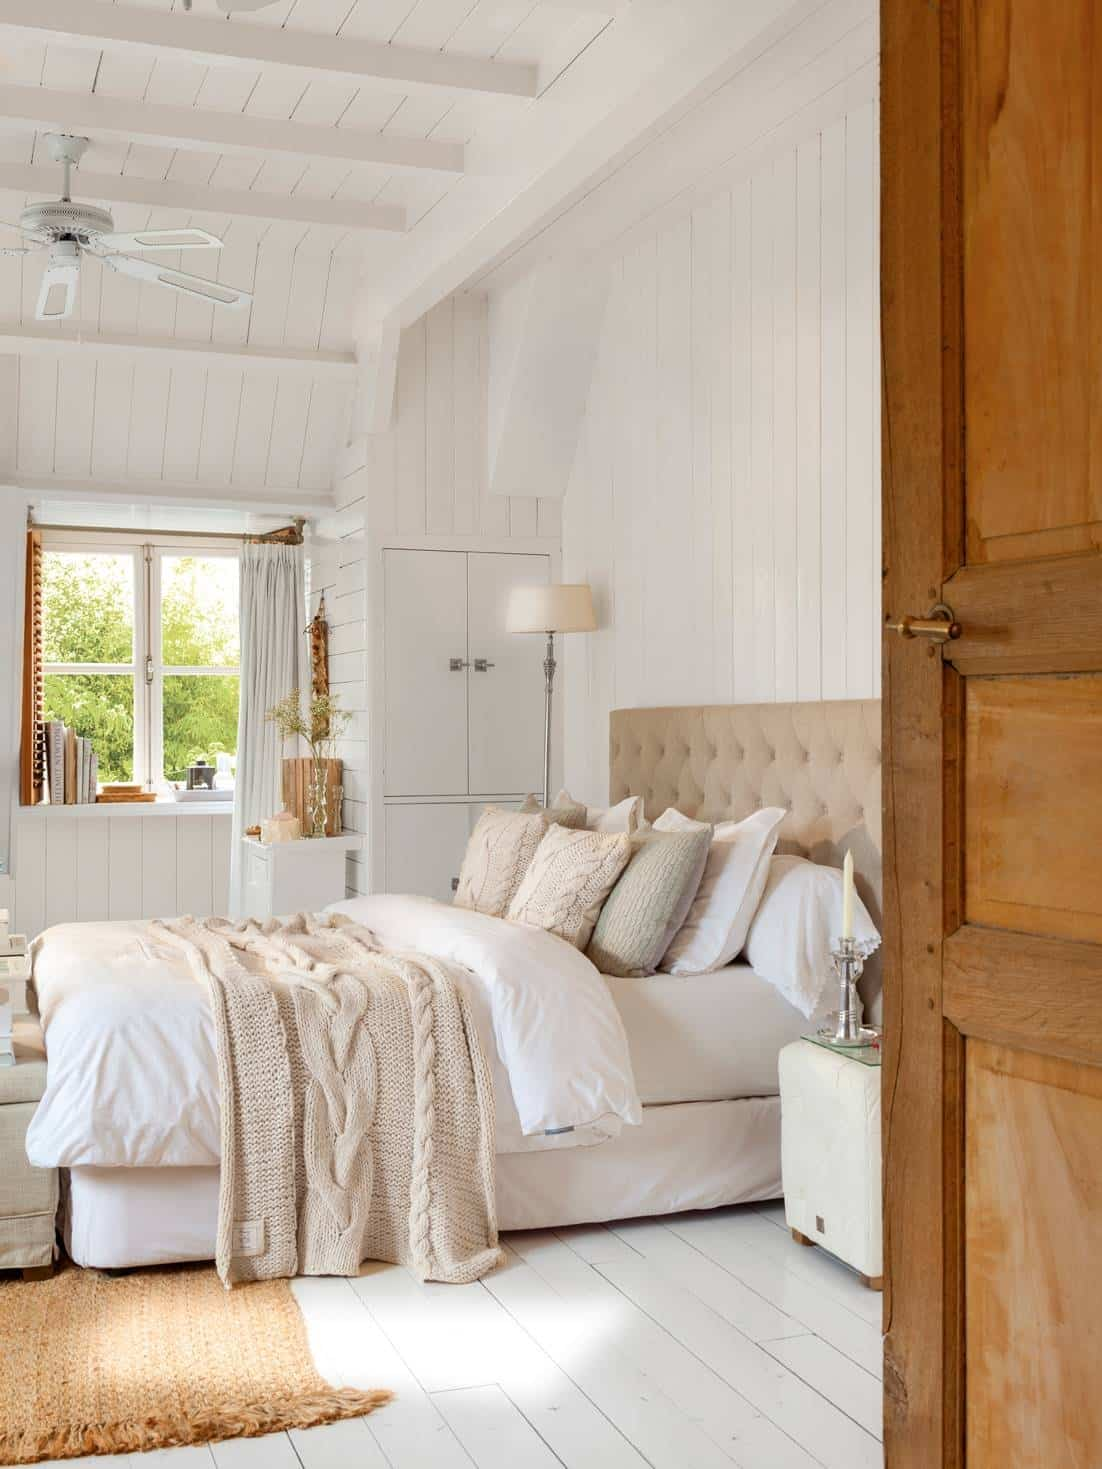 Upholstered headboards - colonial style